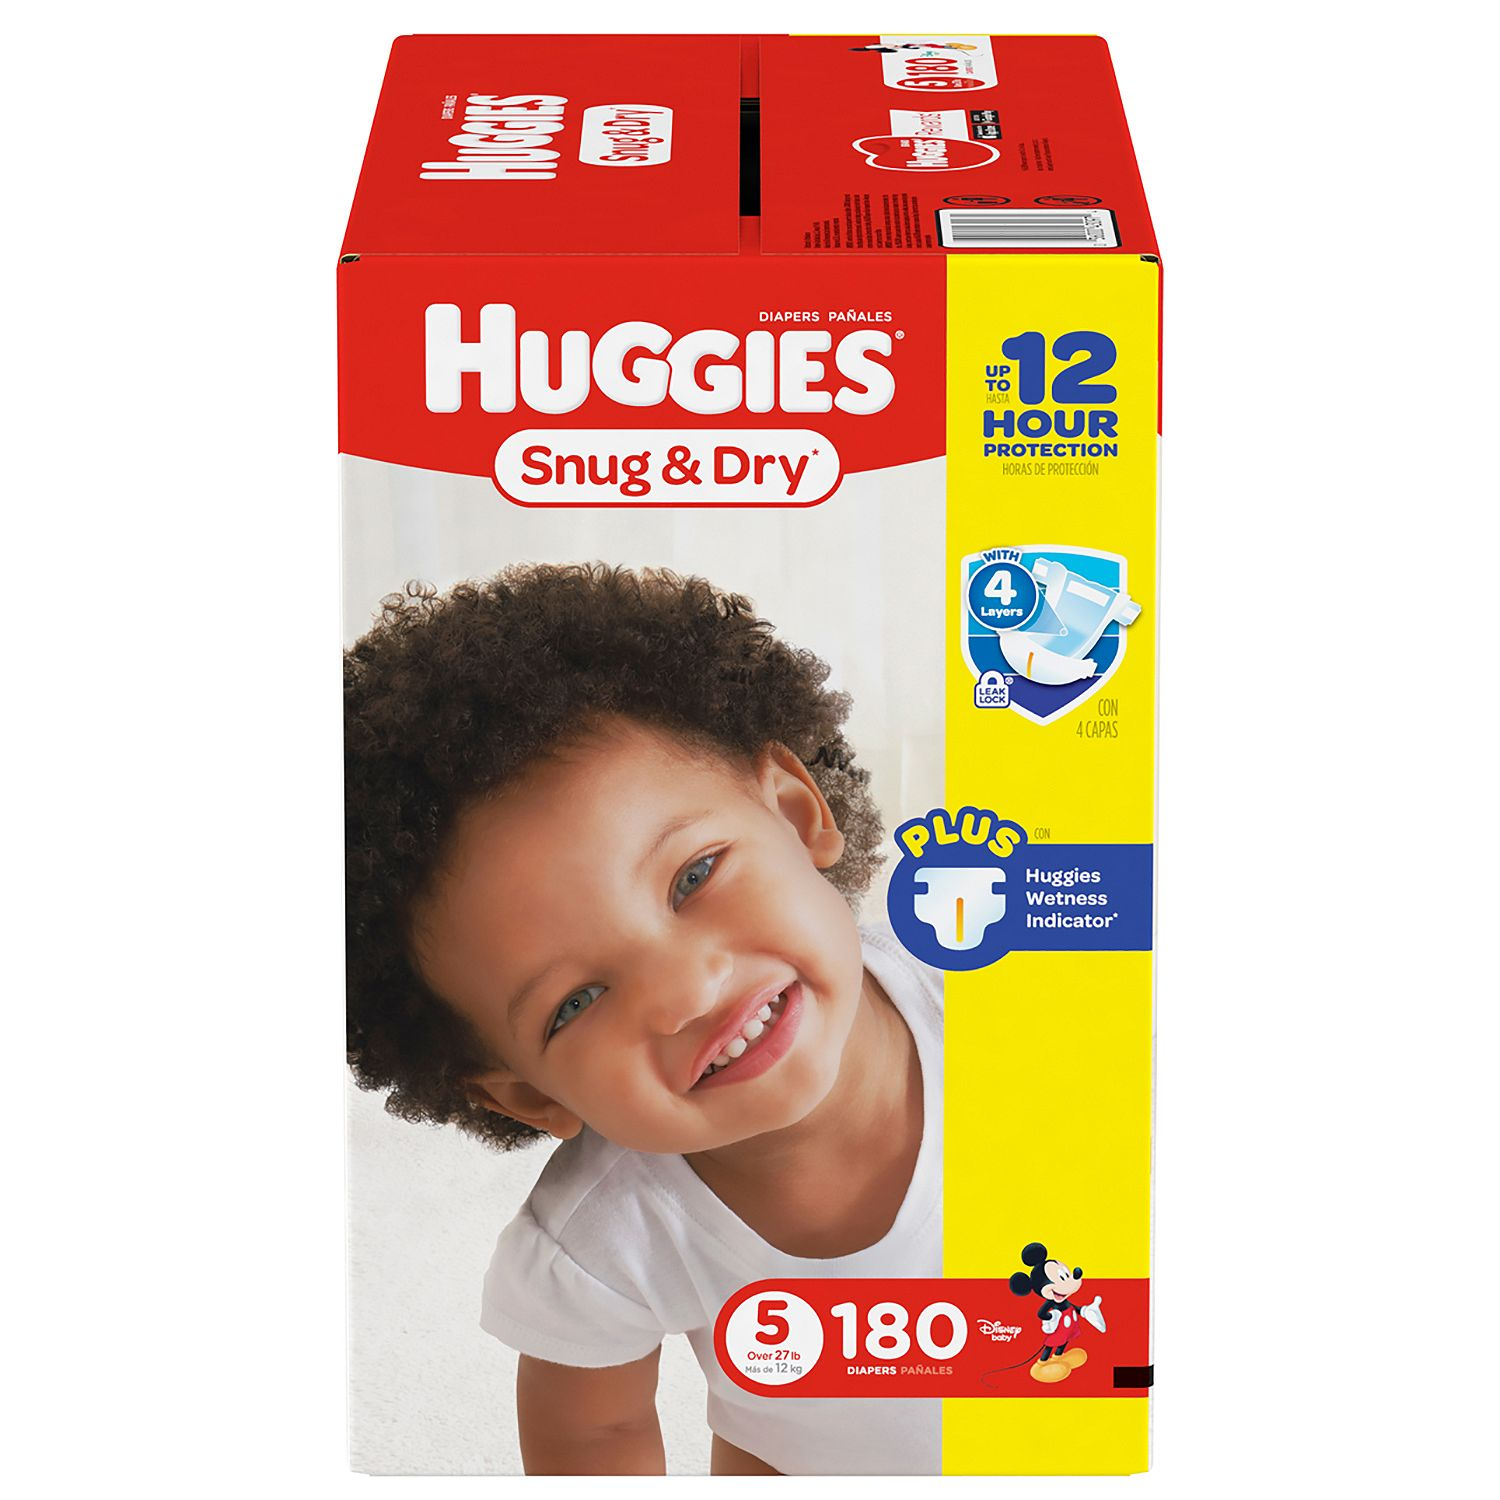 Huggies Snug & Dry Diapers - Diaper Size 5 - 180 Ct. ( Weight 27+ Lbs.) - (Comfortable & Soft Diaper at a Wholeprice)